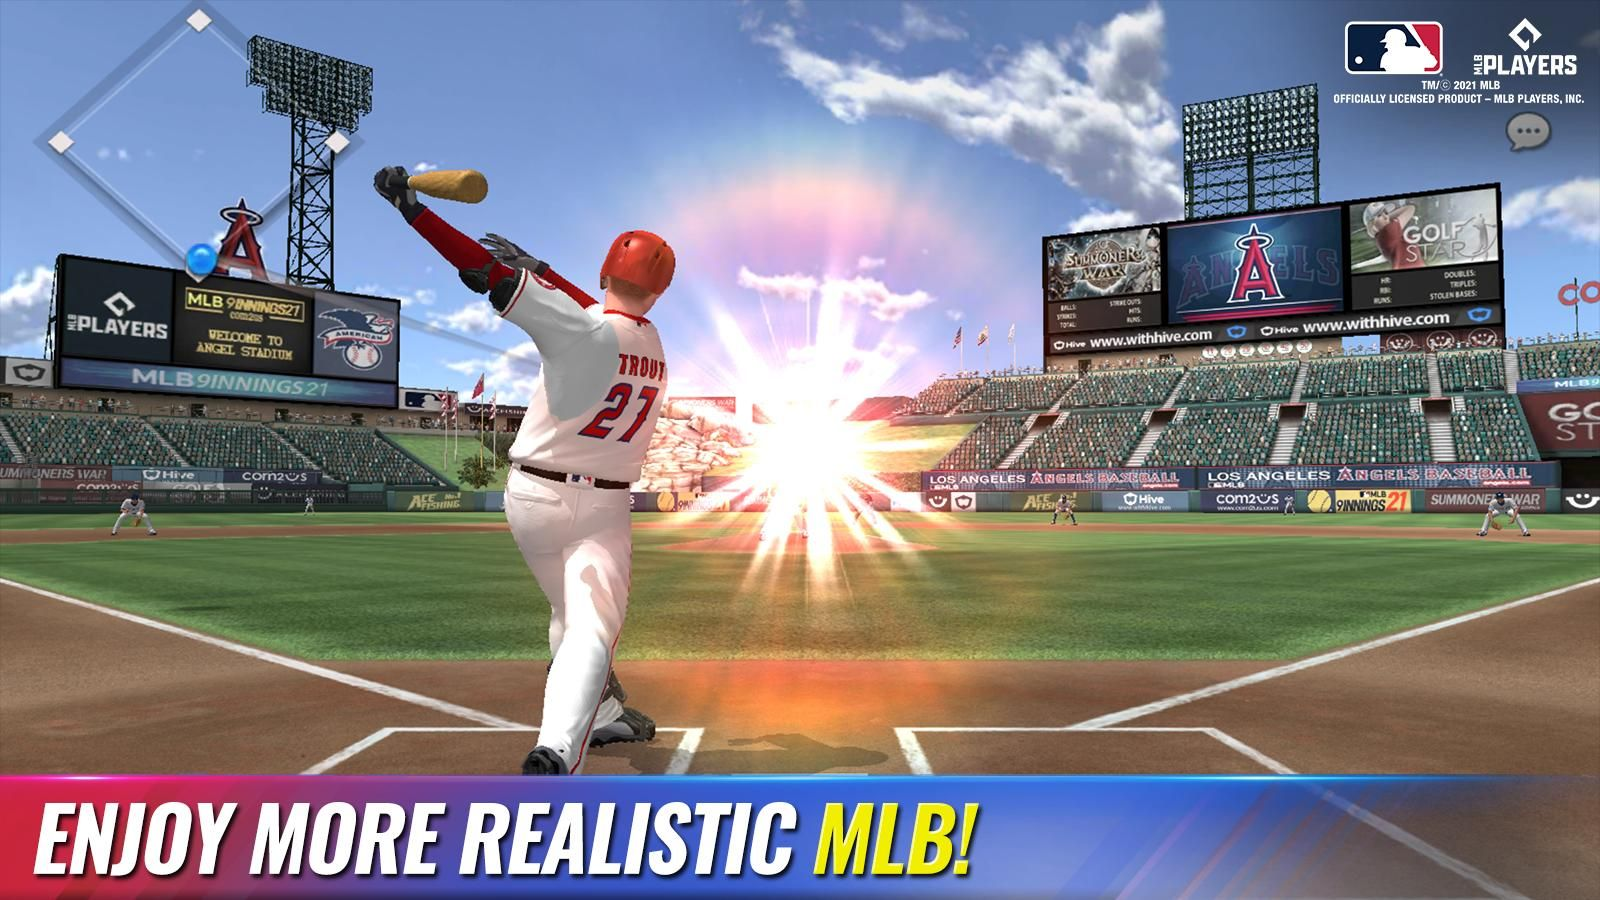 Pin On Mlb 9 Innings 21 Unlimited Points Stars Hack